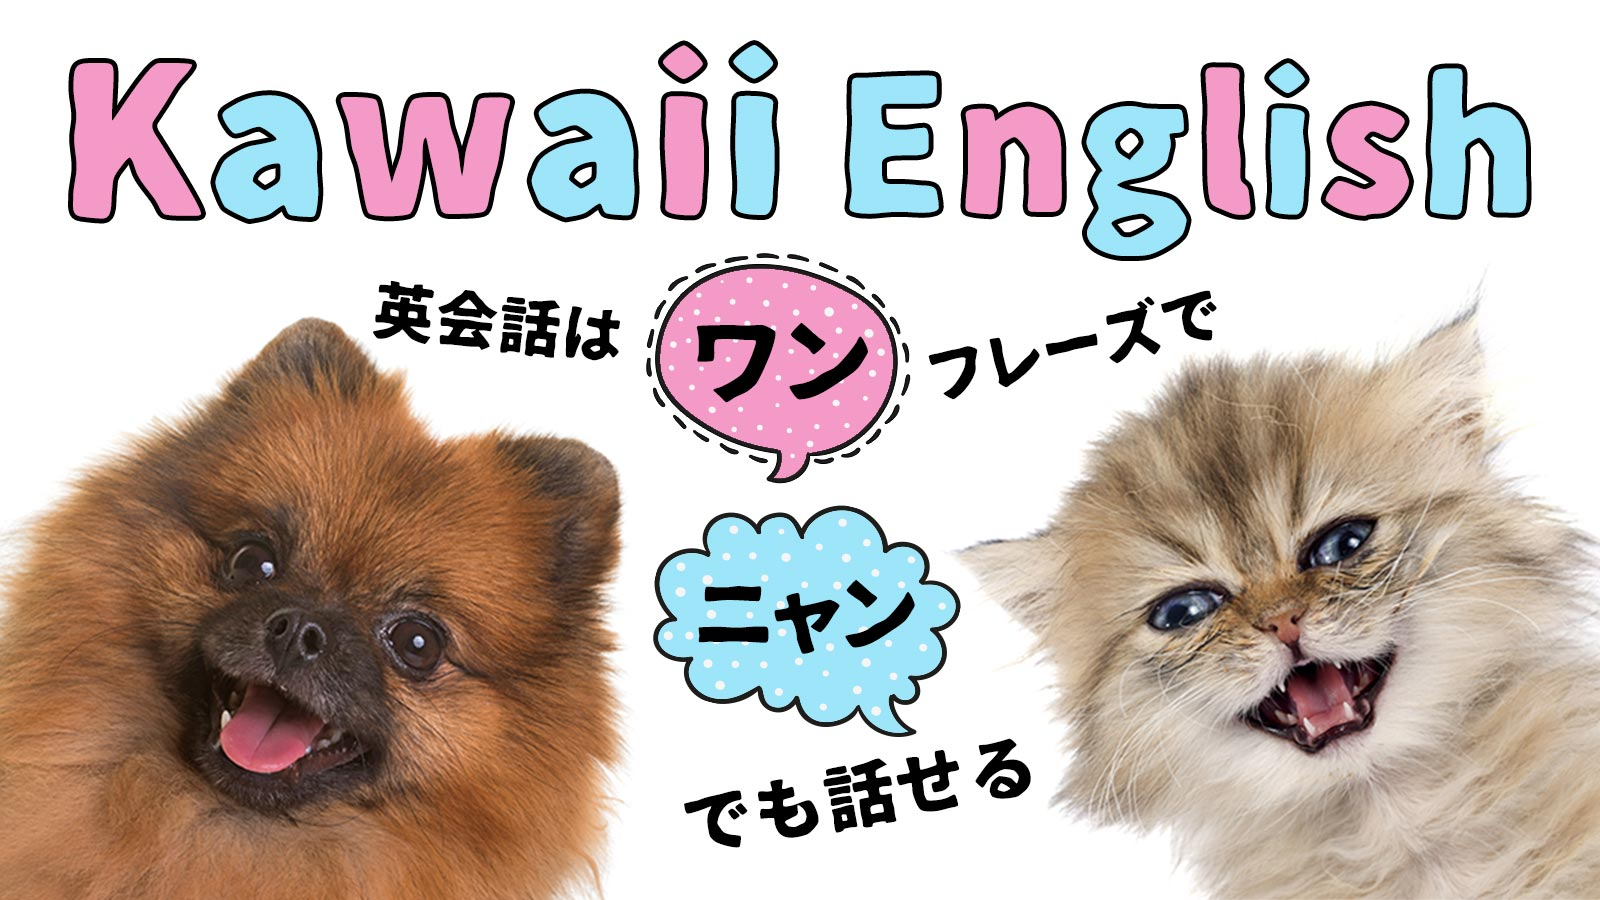 Kawaii English